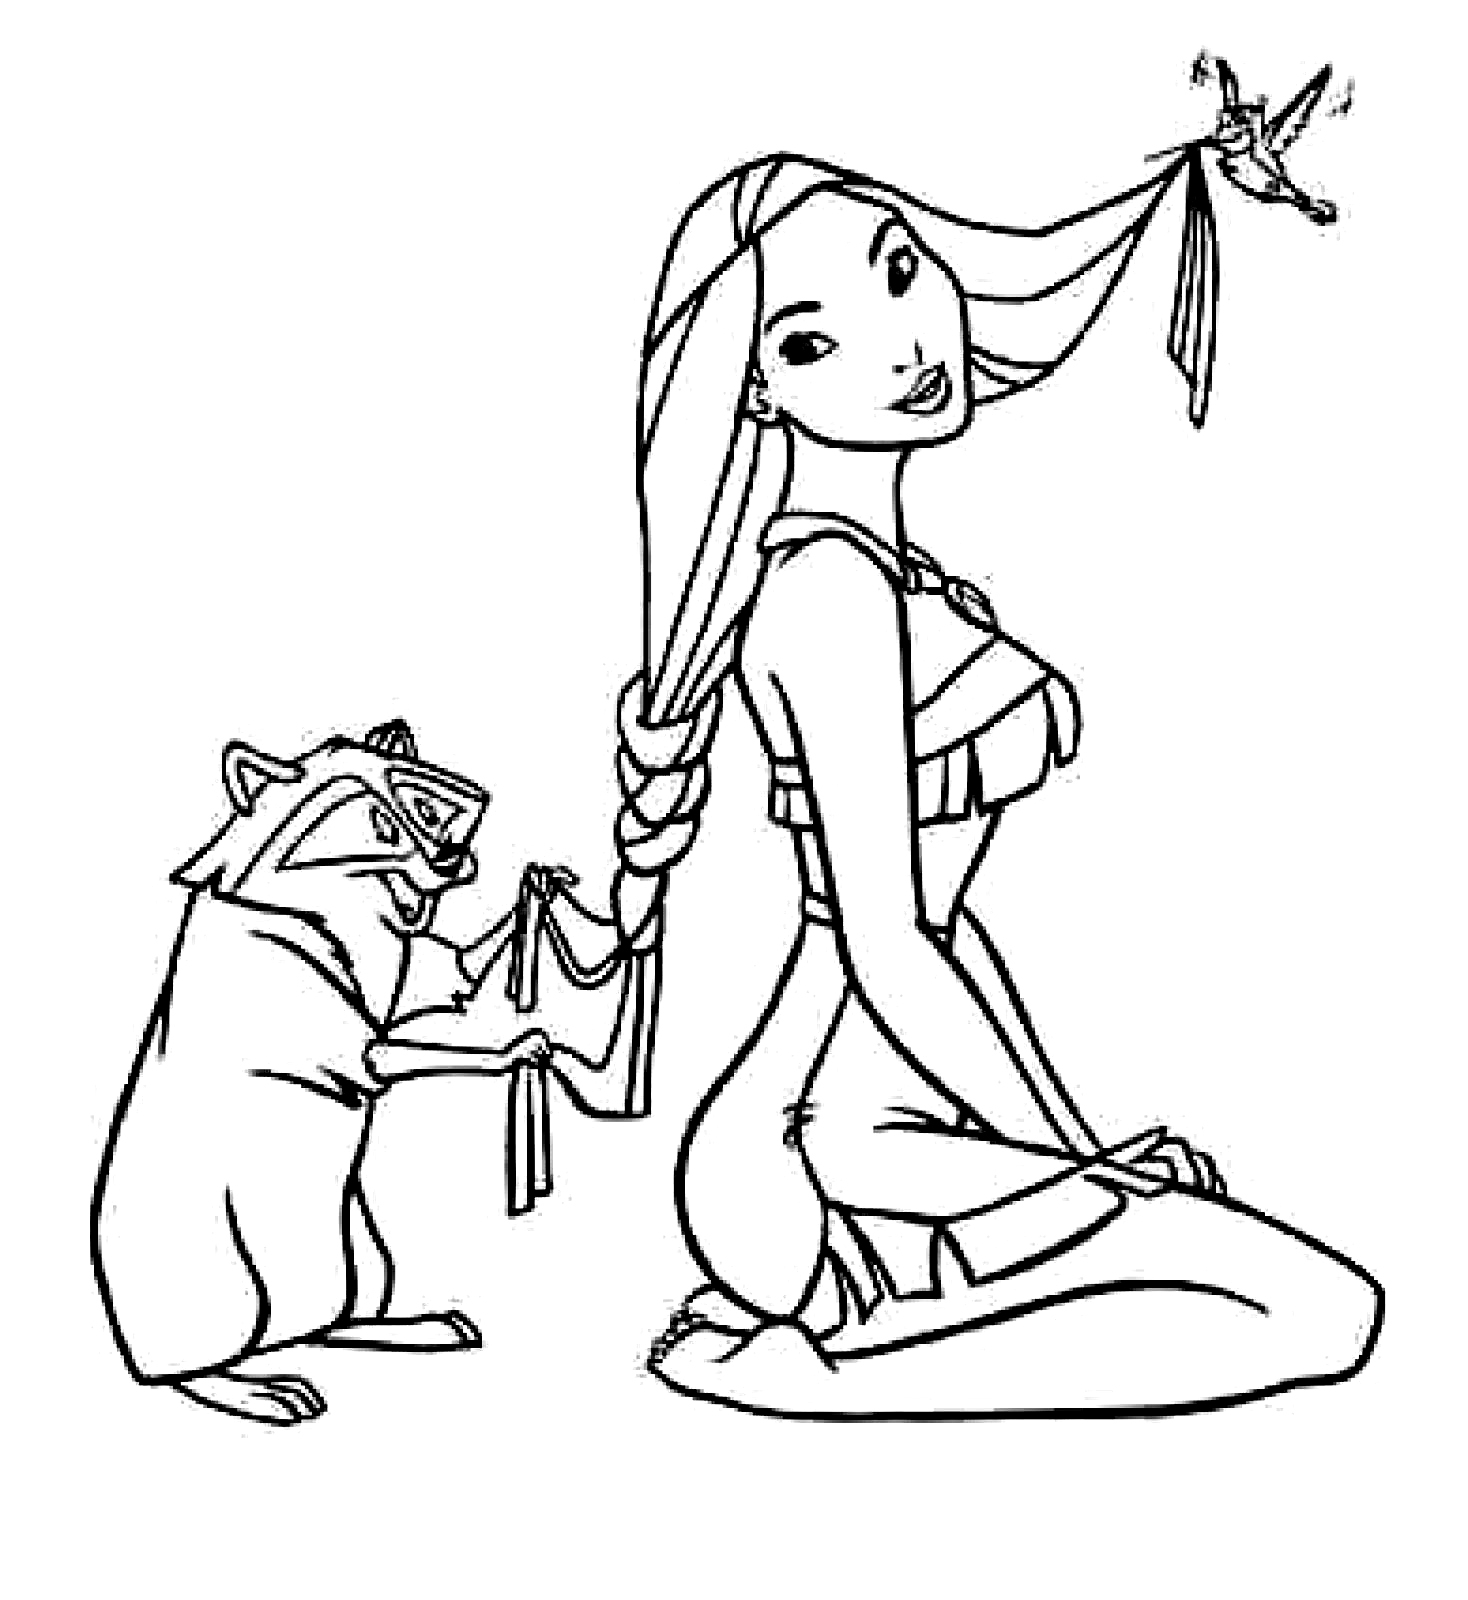 pocahuntas coloring pages - photo#11